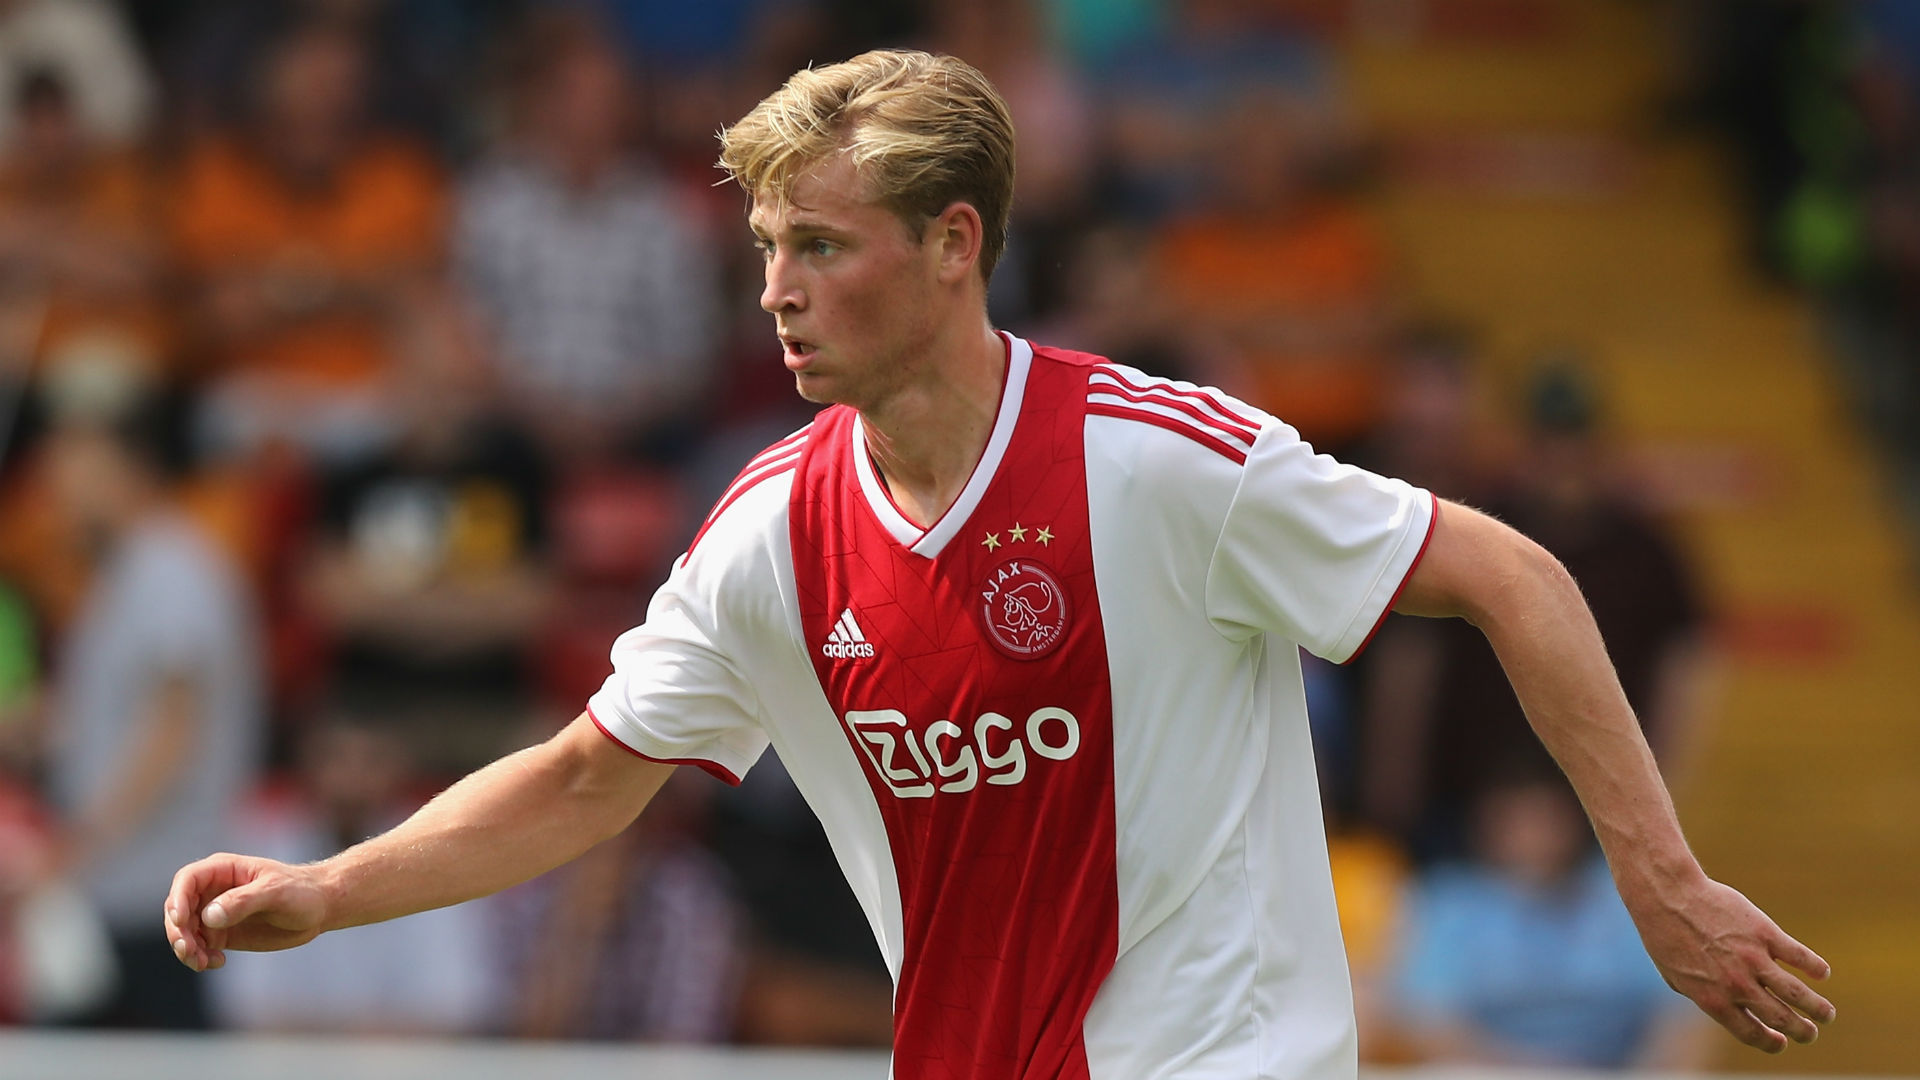 Paris Saint-Germain are reportedly close to agreeing a deal for Frenkie de Jong, but Erik ten Hag says the midfielder is focused on Ajax.